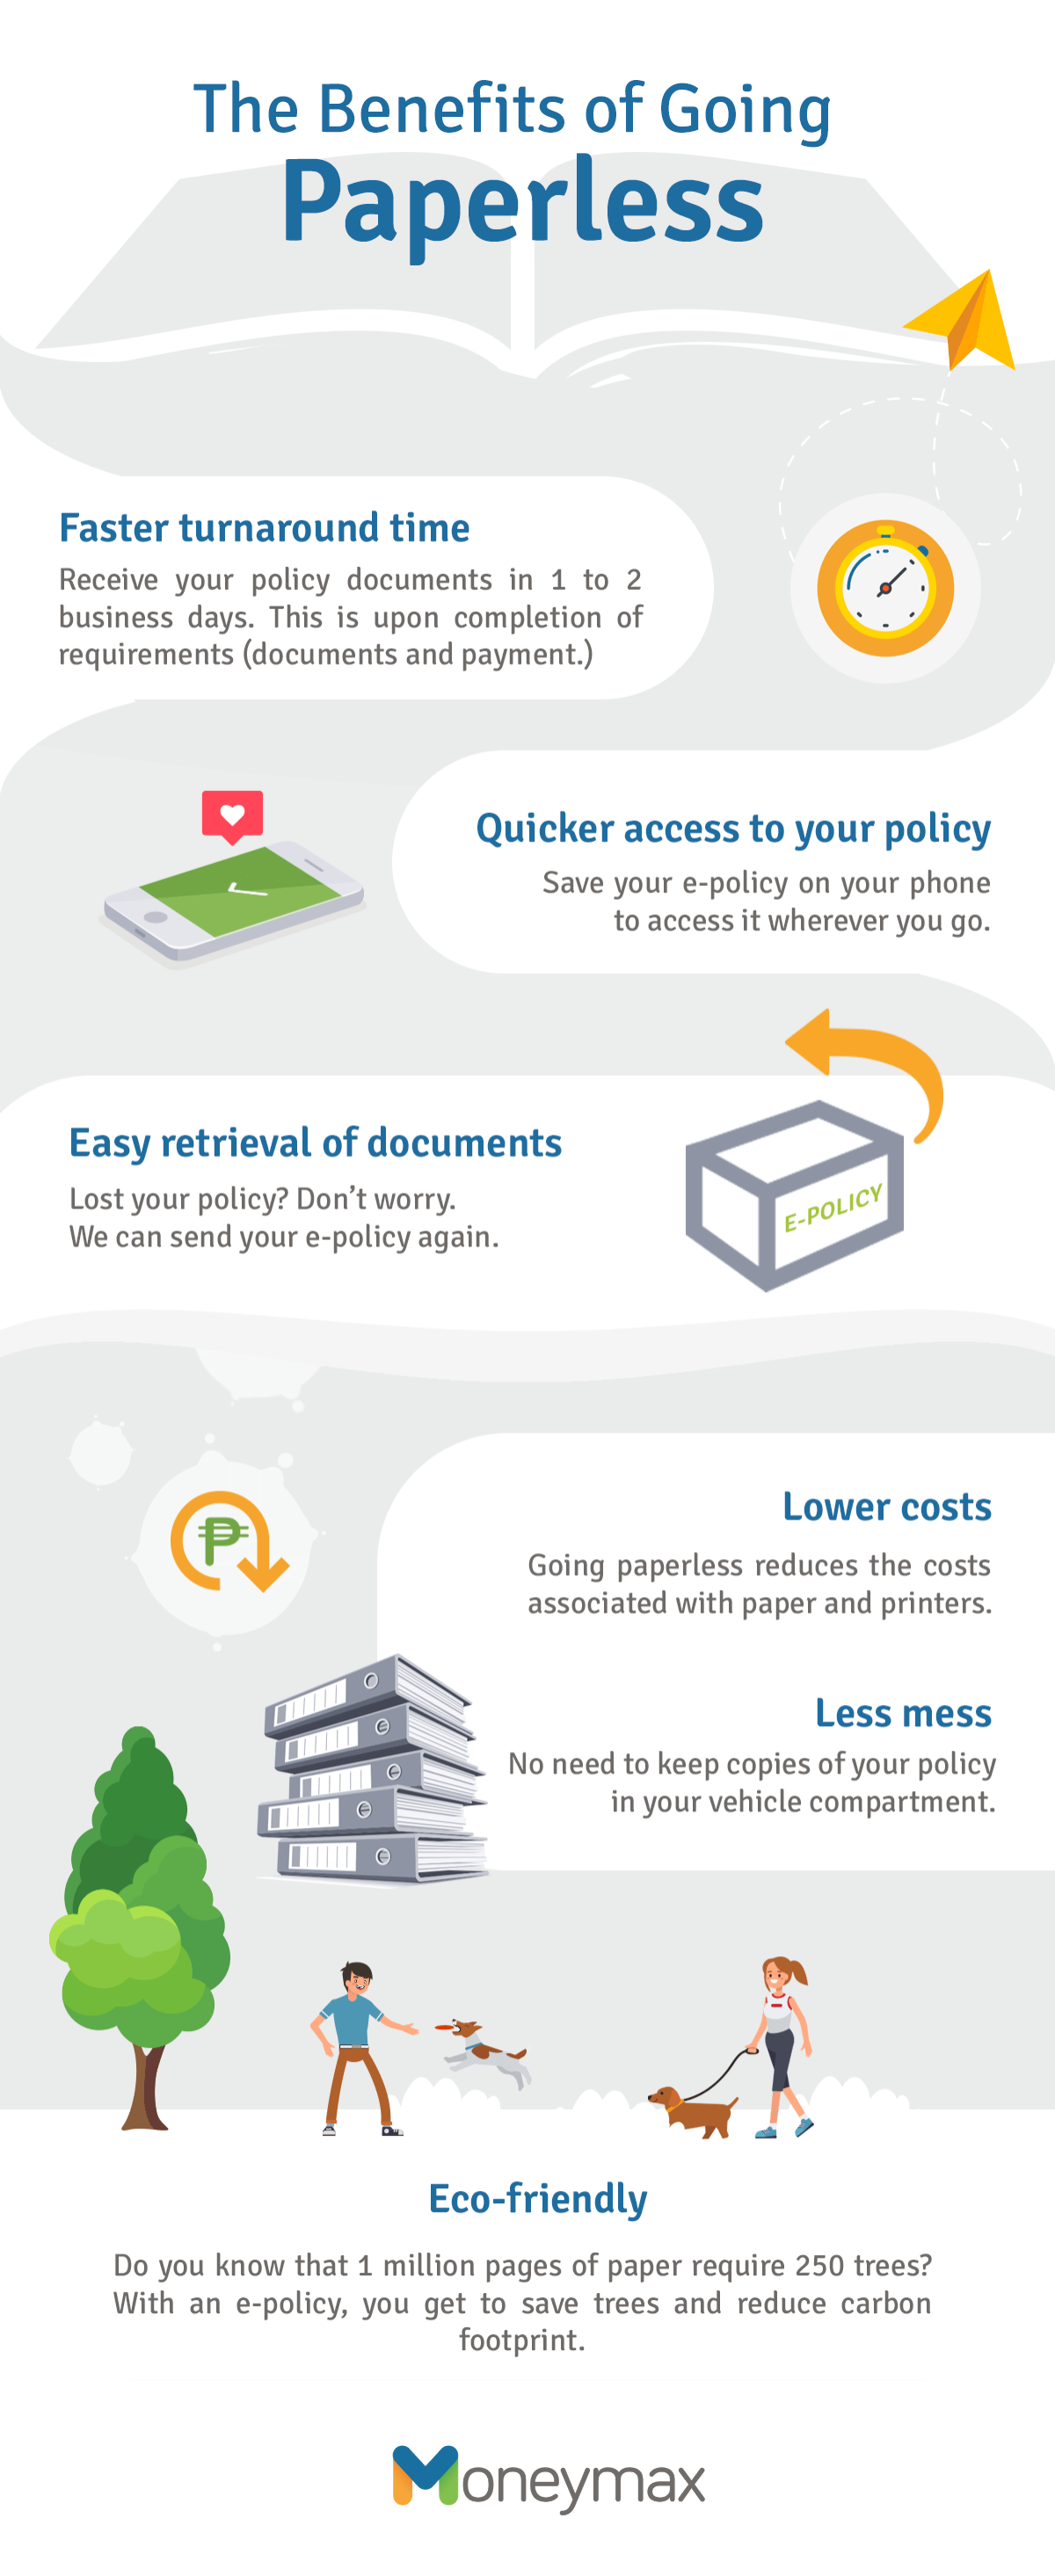 The Benefits of Going Paperless with Moneymax